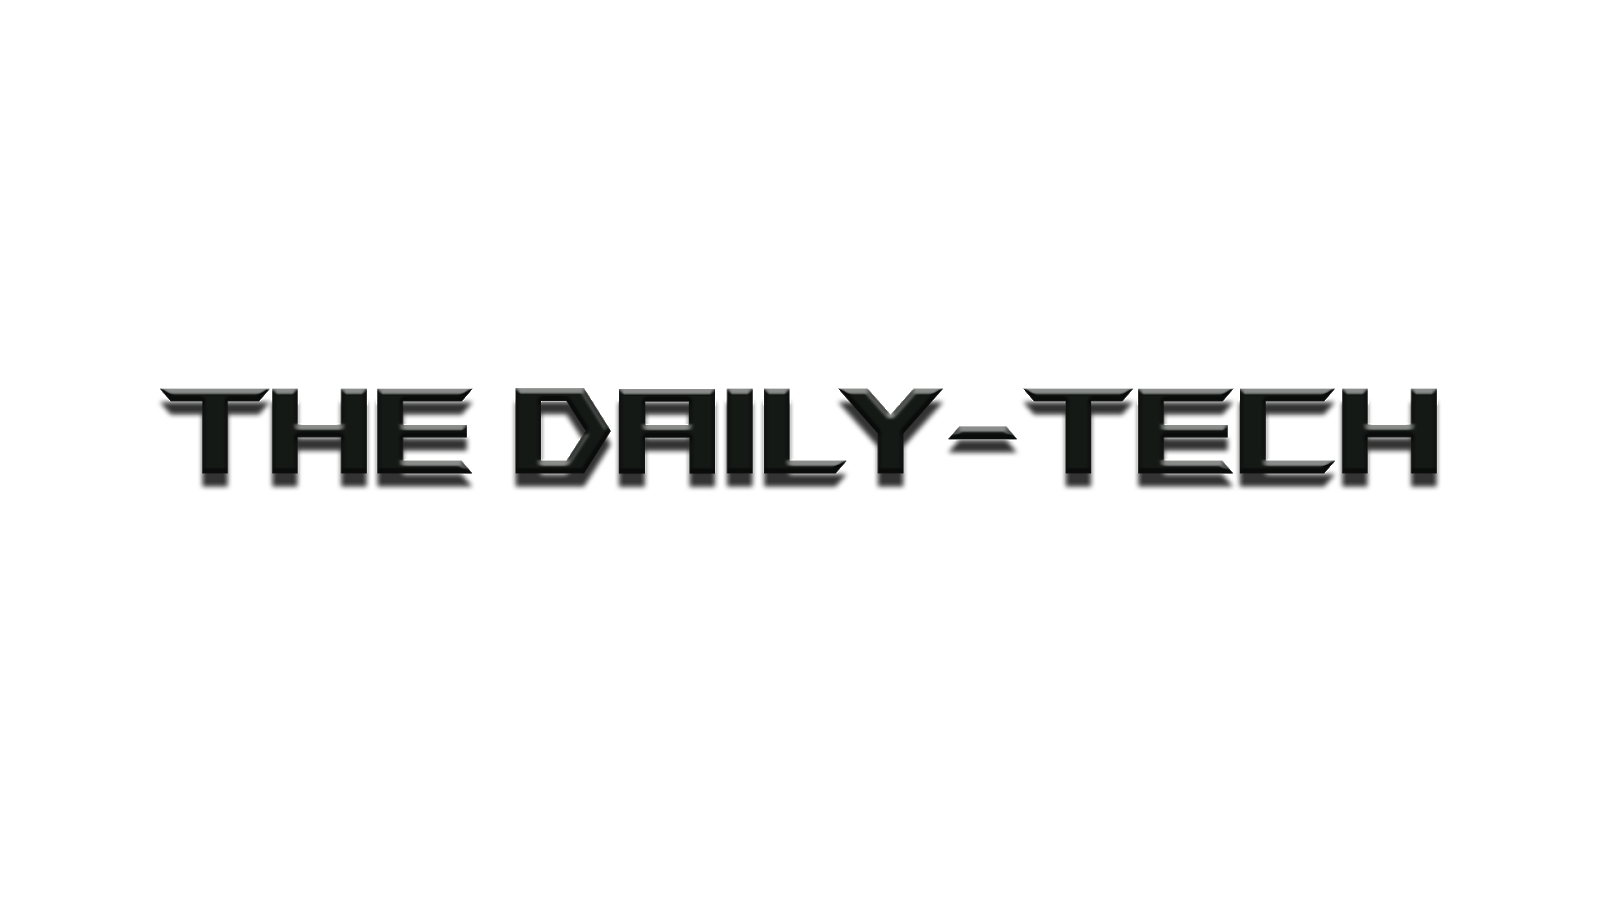 thedaily-tech